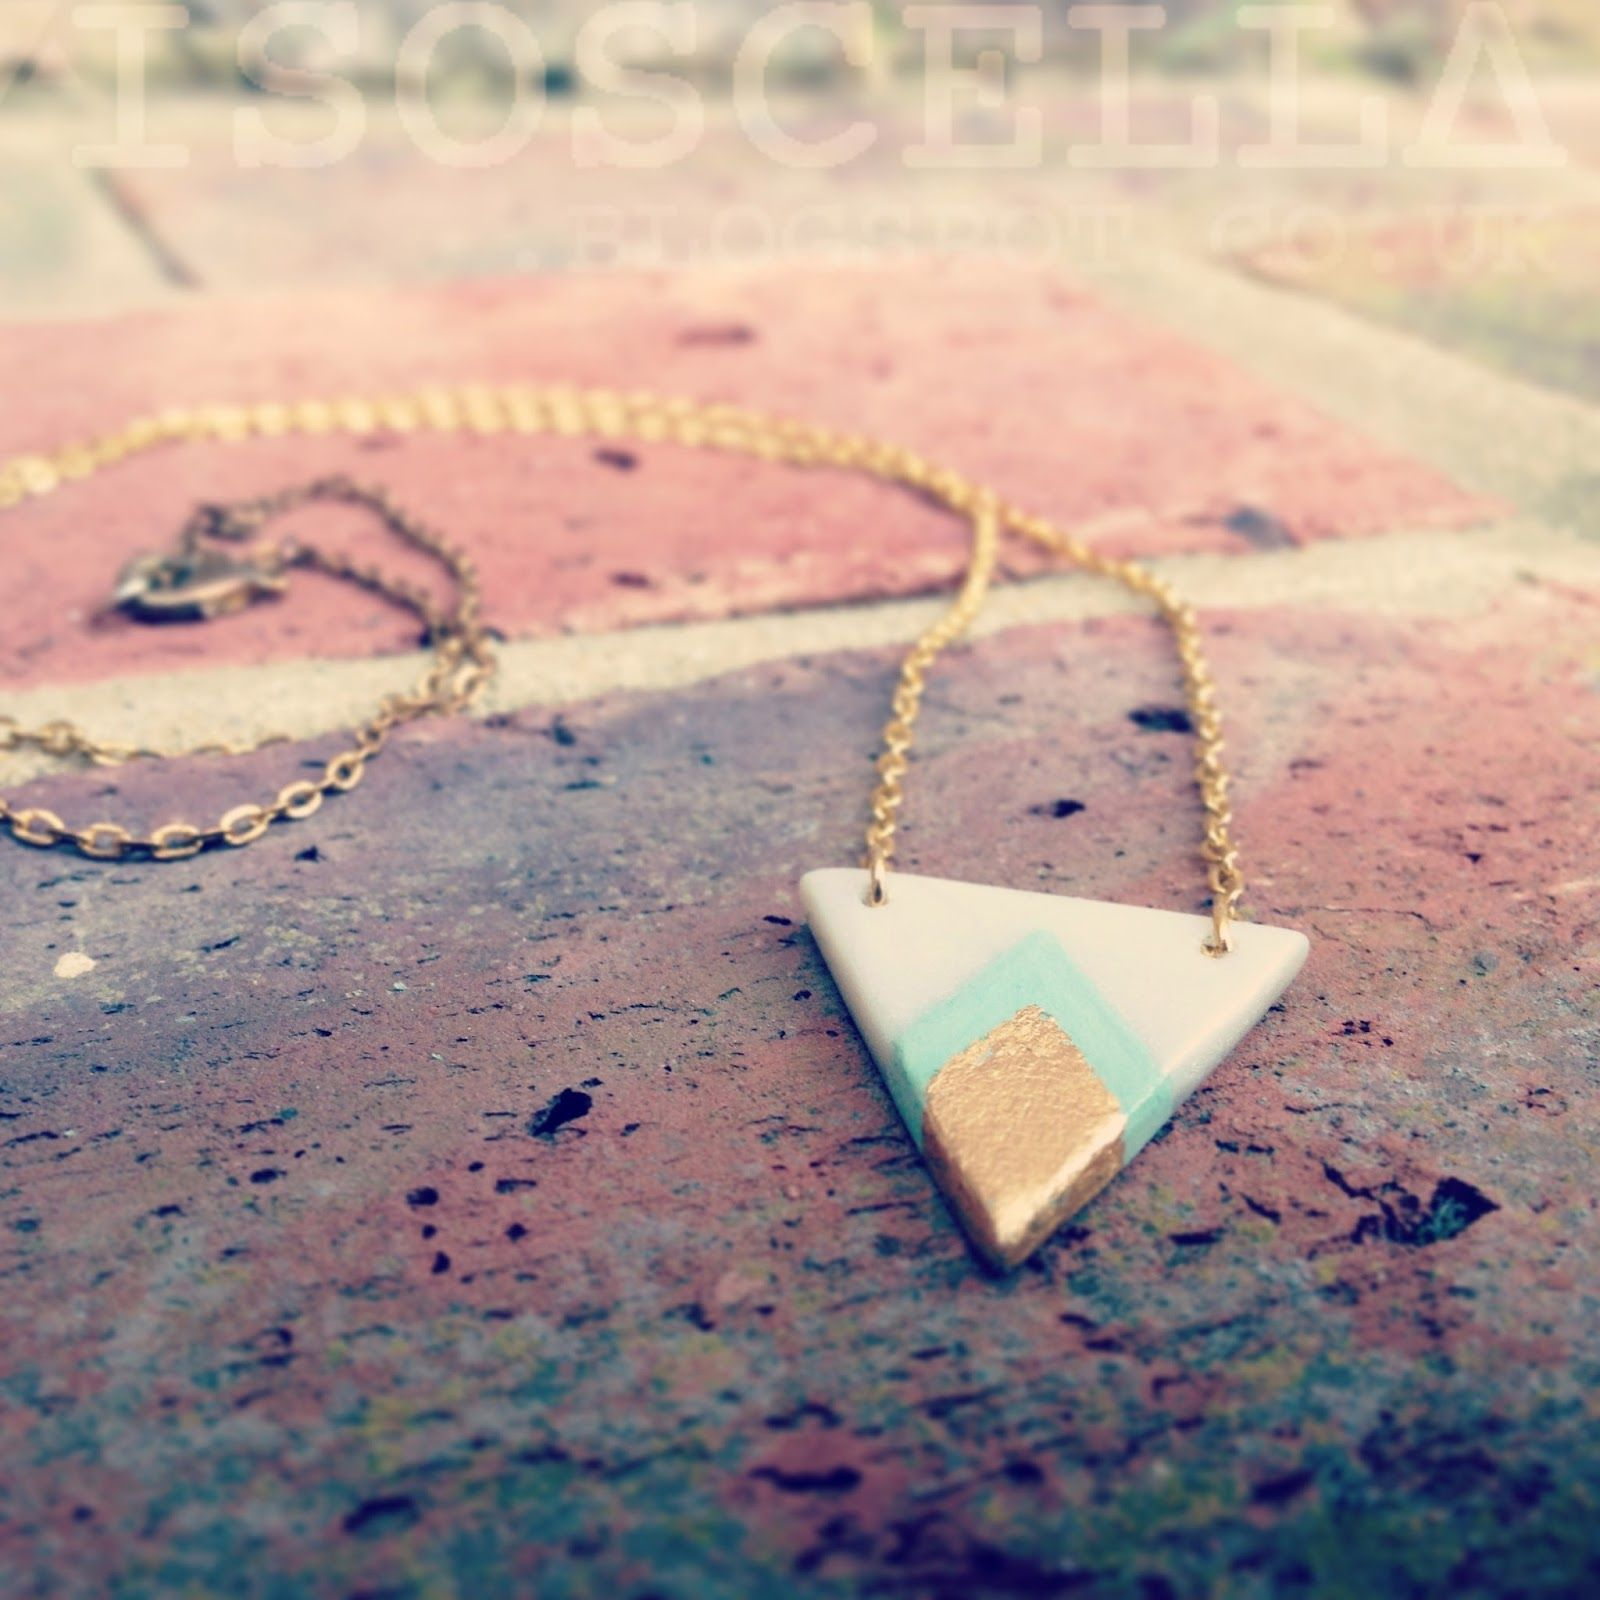 Clay Triangle Drawing Craft Handmade Polymer Clay Chevron Triangle Necklace